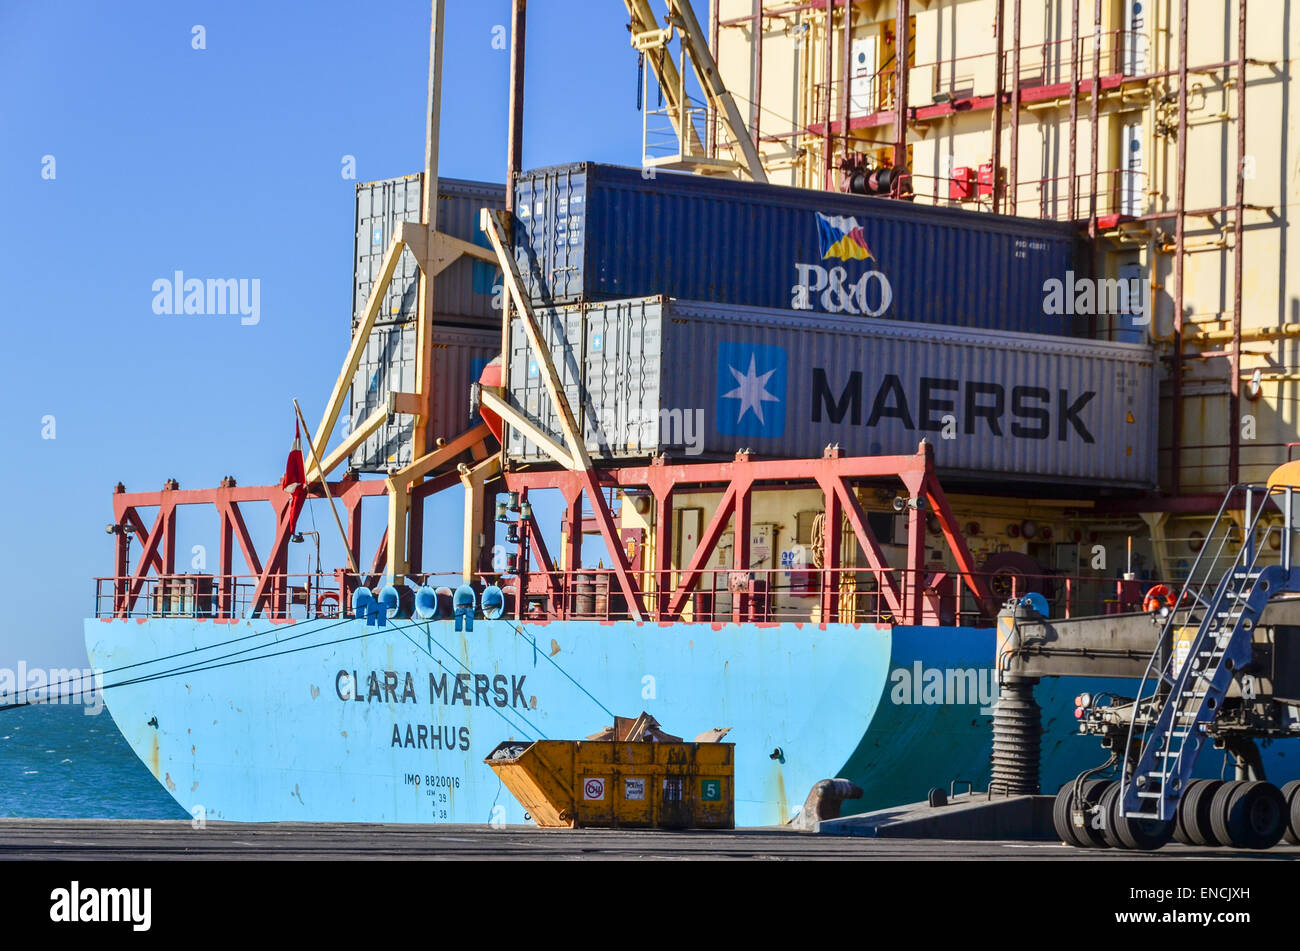 Clara Maersk container cargo ship at the port of Walvis Bay, Namibia - Stock Image